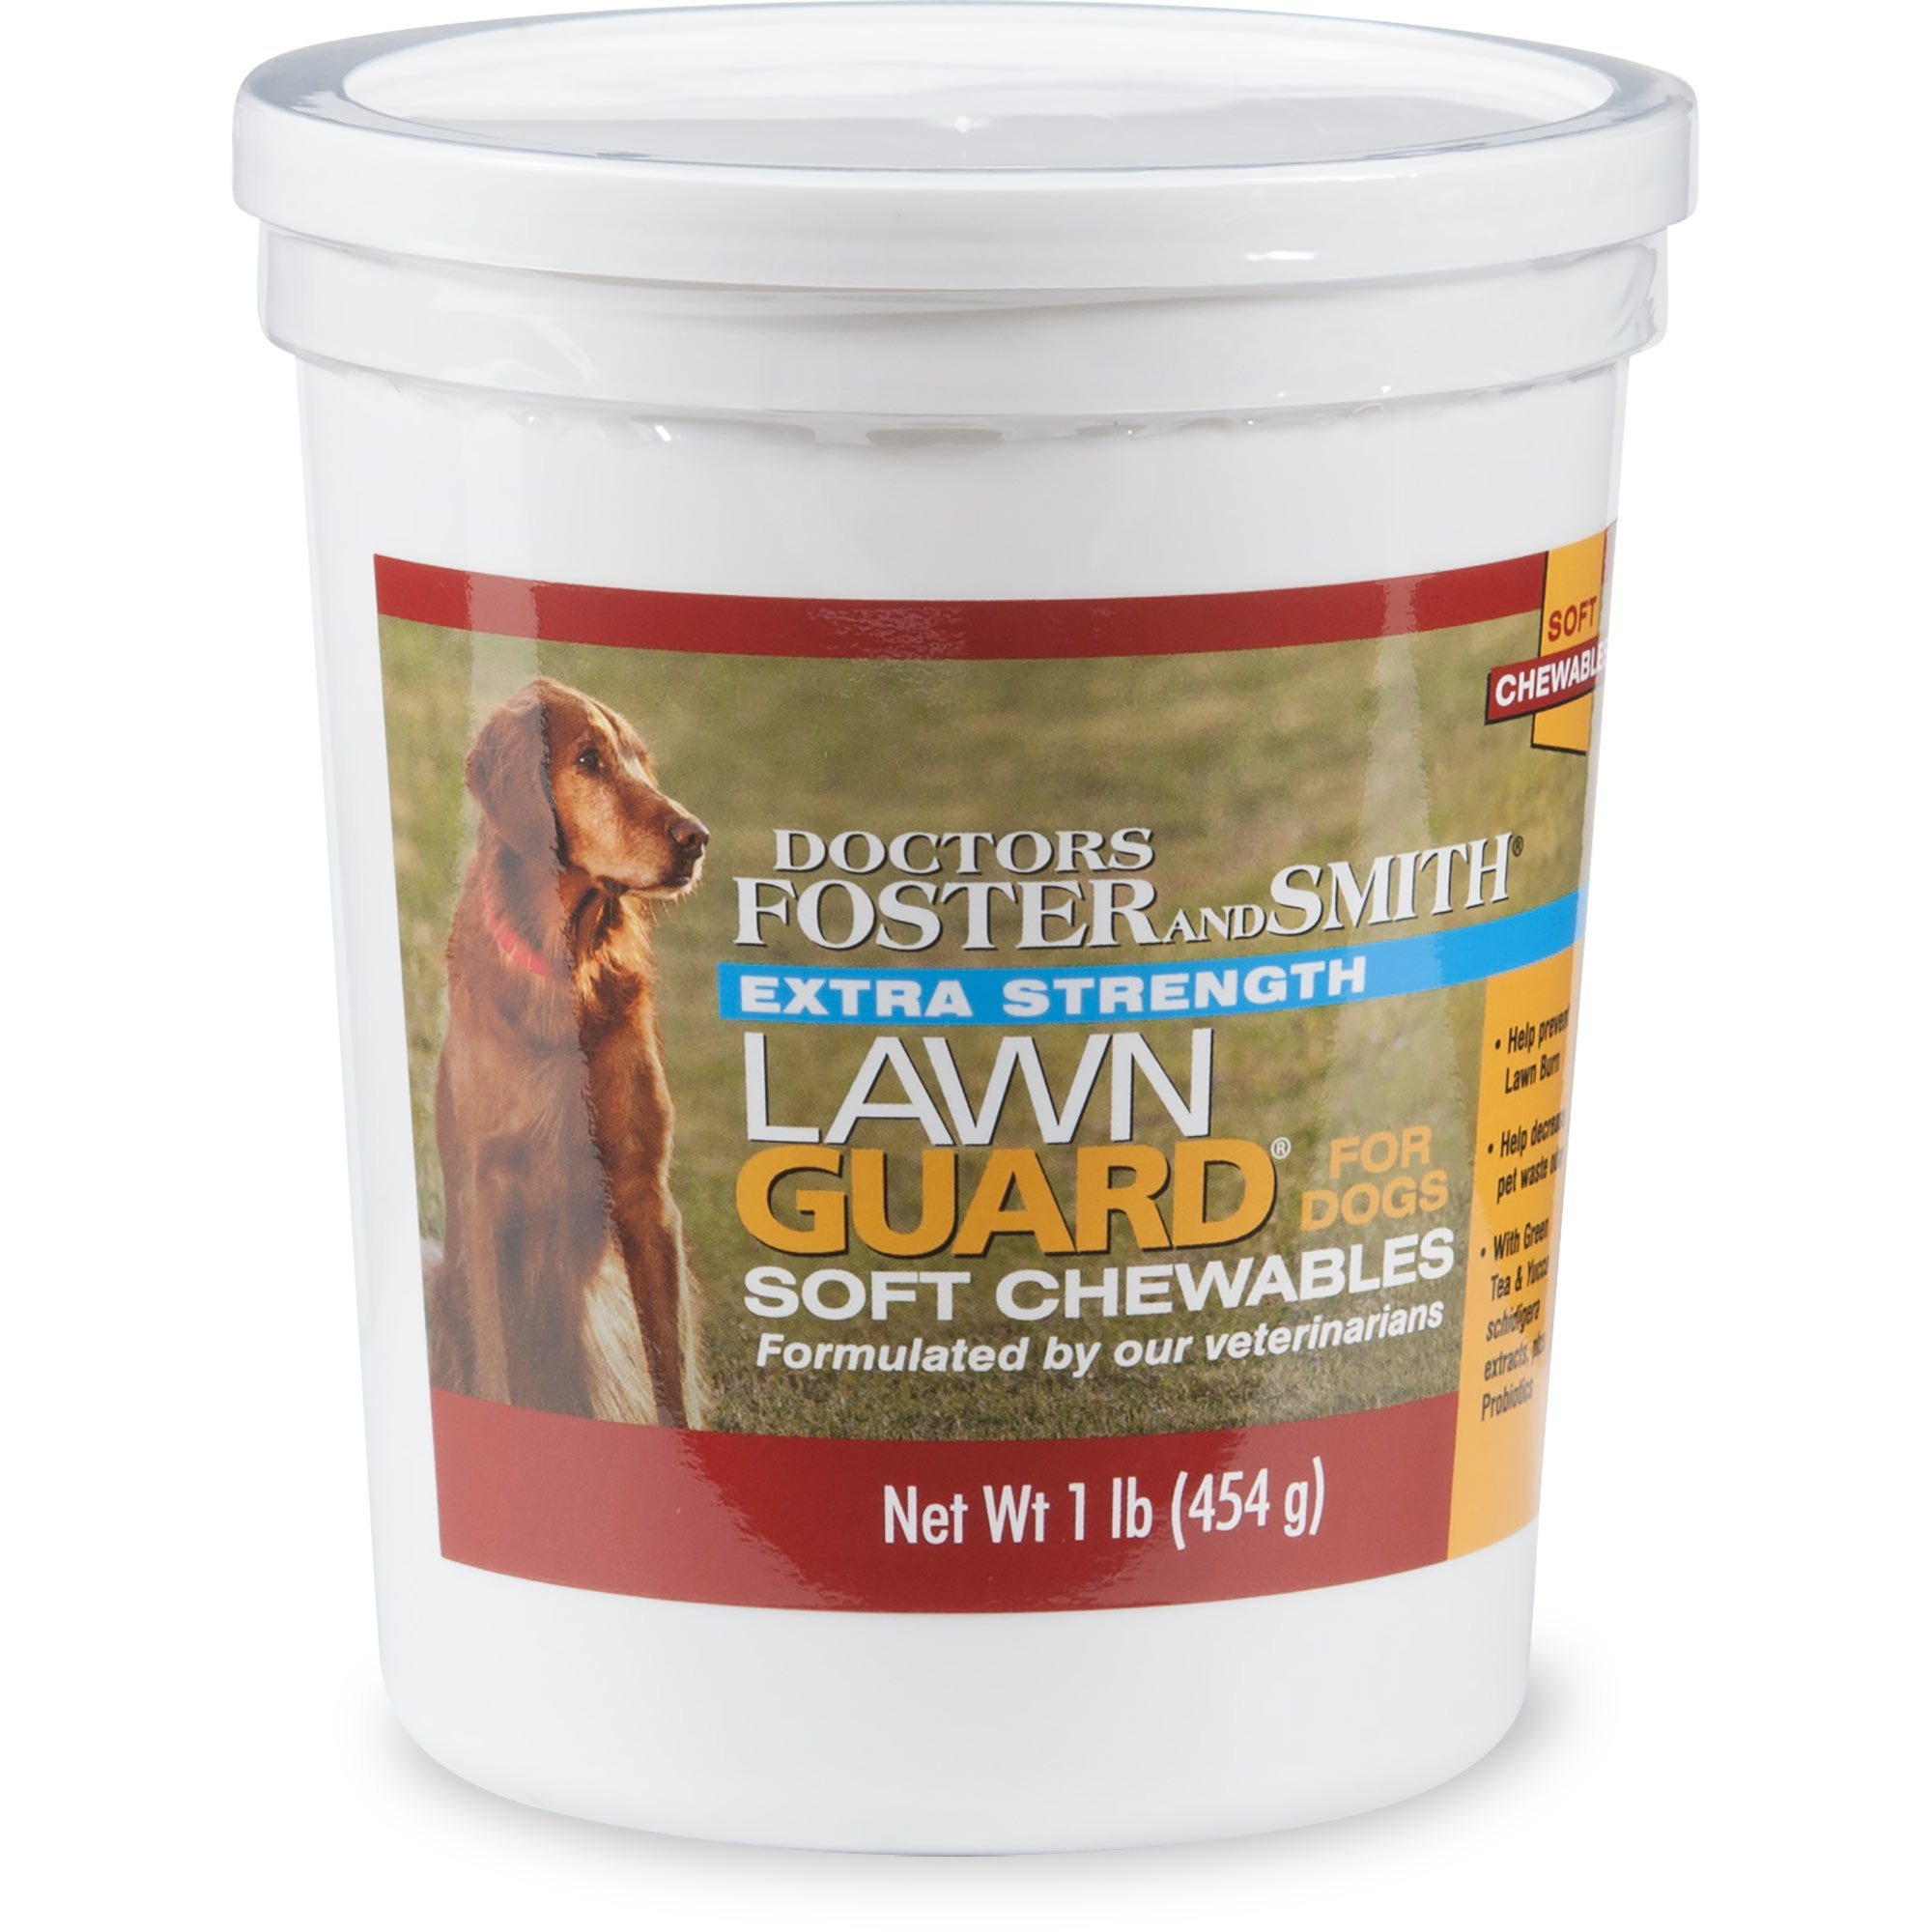 Drs  Foster and Smith Extra Strength Lawn Guard Soft Chews for Dogs, 2 lbs   | Petco